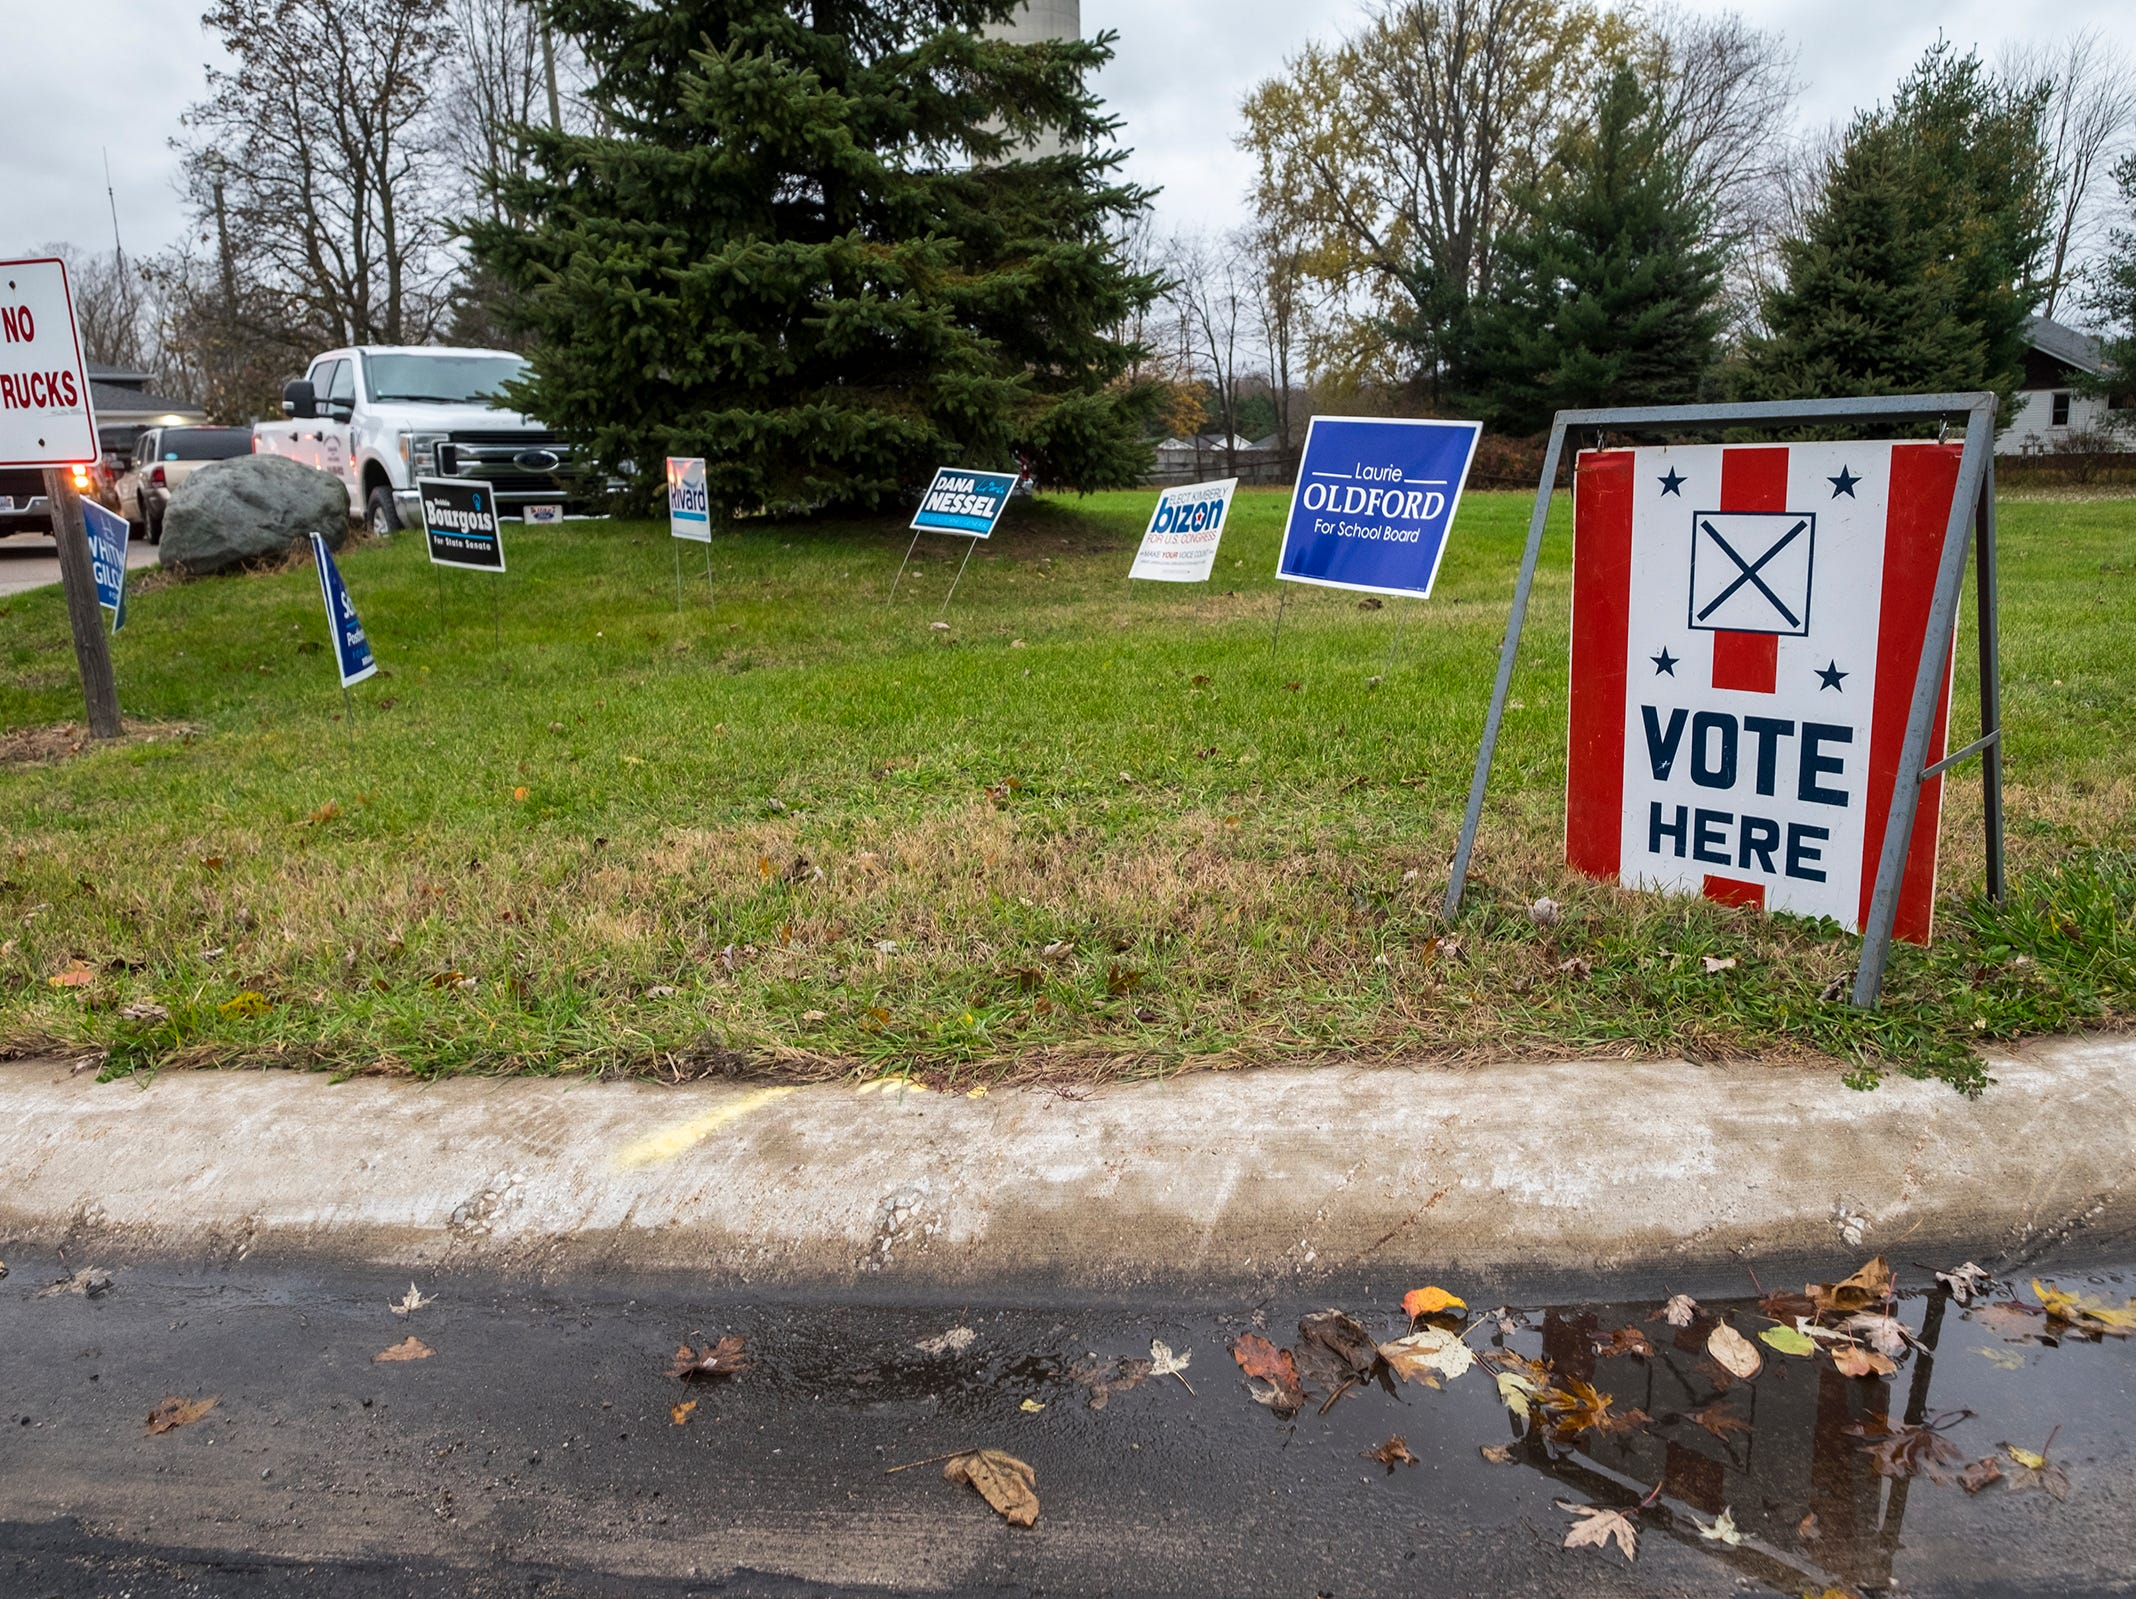 Signs supporting candidates are staked into the grass outside of the Port Huron Township Department of Public Works office Tuesday, Nov. 6, 2018 during mid-term elections.